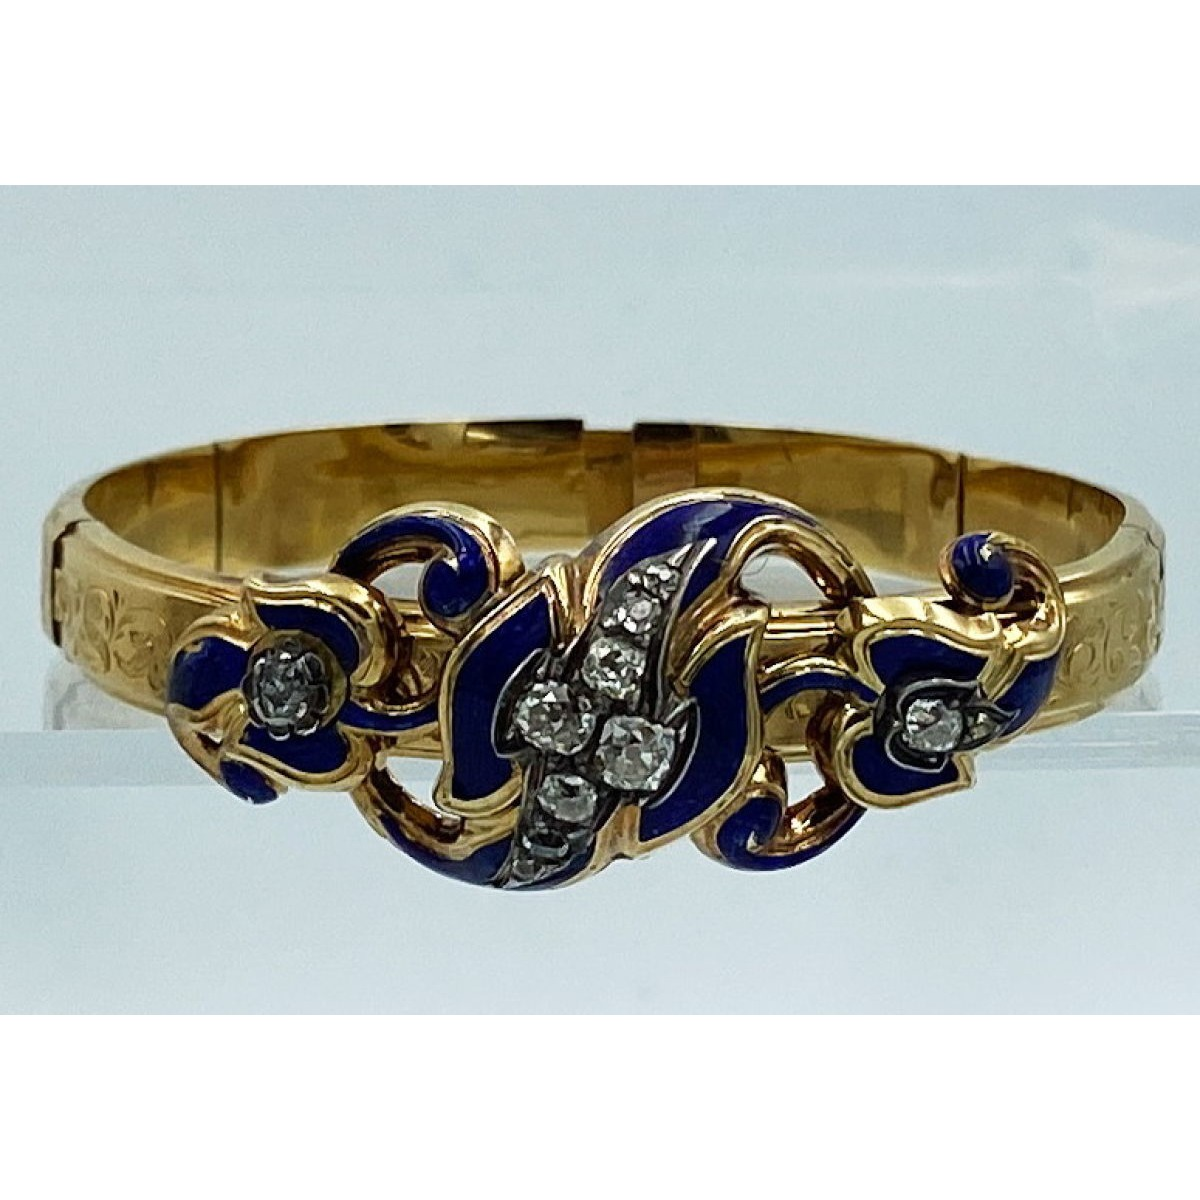 Fabulous! Victorian 18kt Gold Bracelet with Light Engraving, Brilliant Blue Enameling with Rose Cut Diamonds